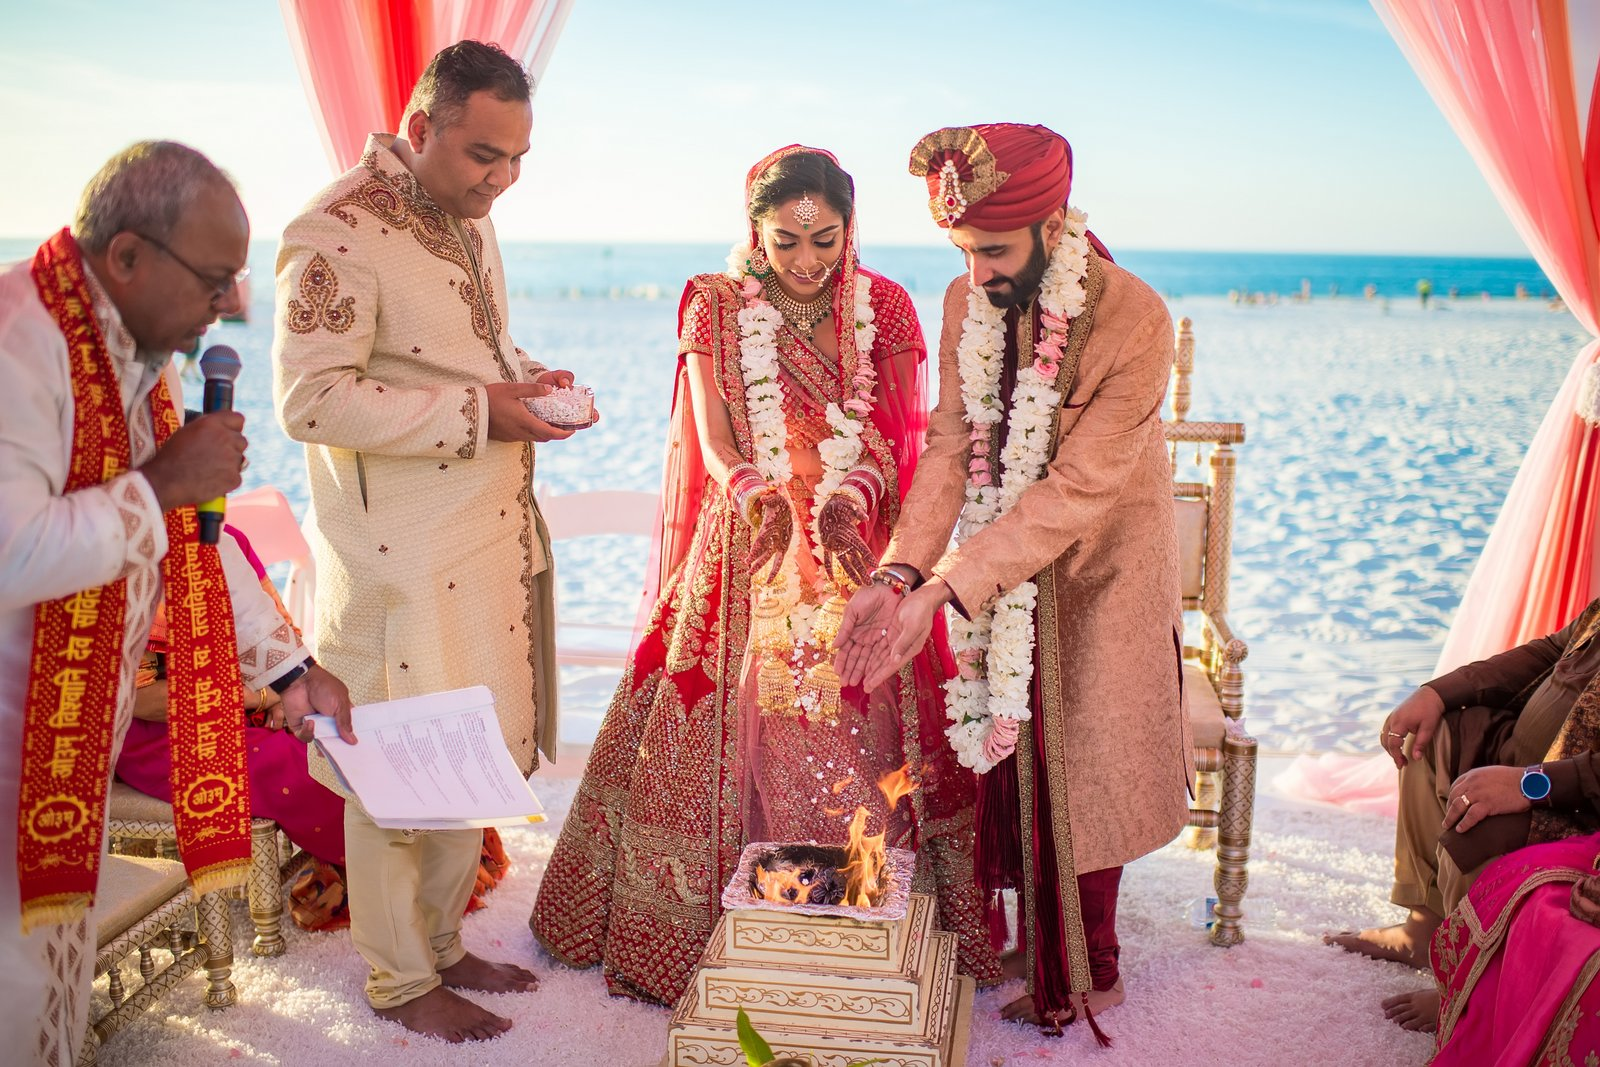 Janki + Sahil Clearwater Indian Wedding Sneak Peek, Miami Wedding Photographers | Häring Photography, Indian Wedding Photographer in Florida, Best Muslim, Hindu - South East Asian Wedding Photographers